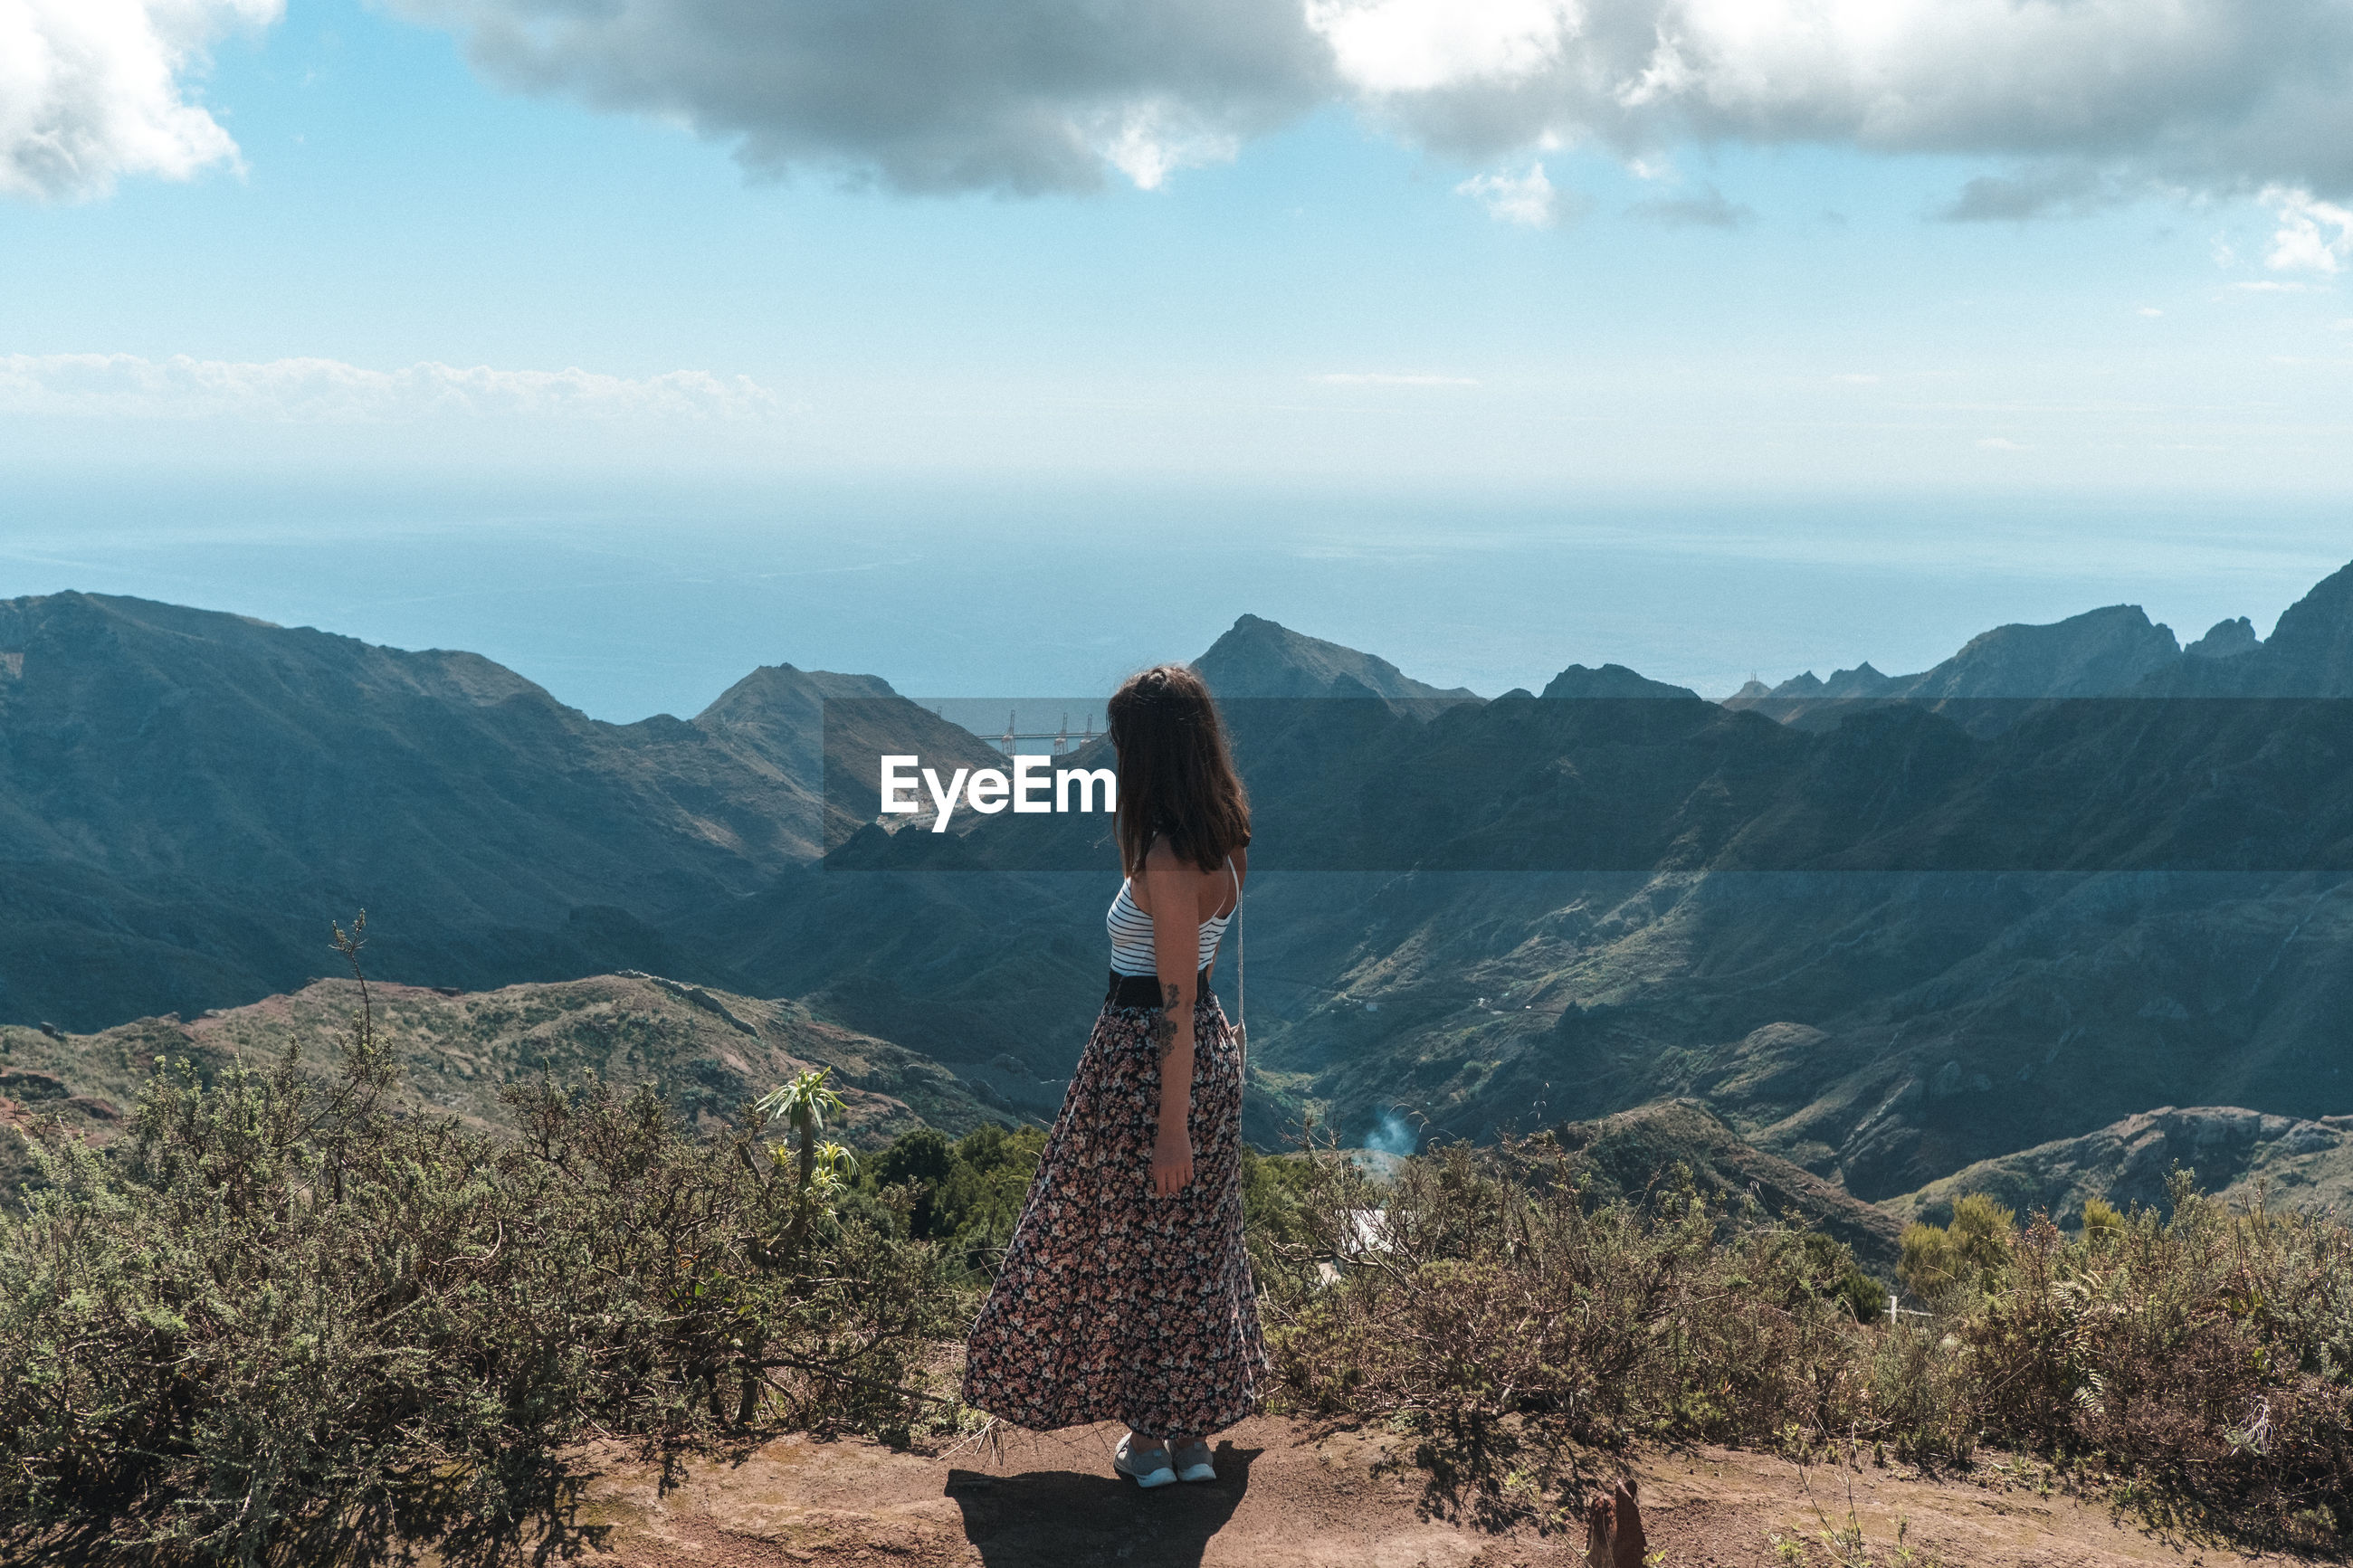 Woman looking at mountains against sky